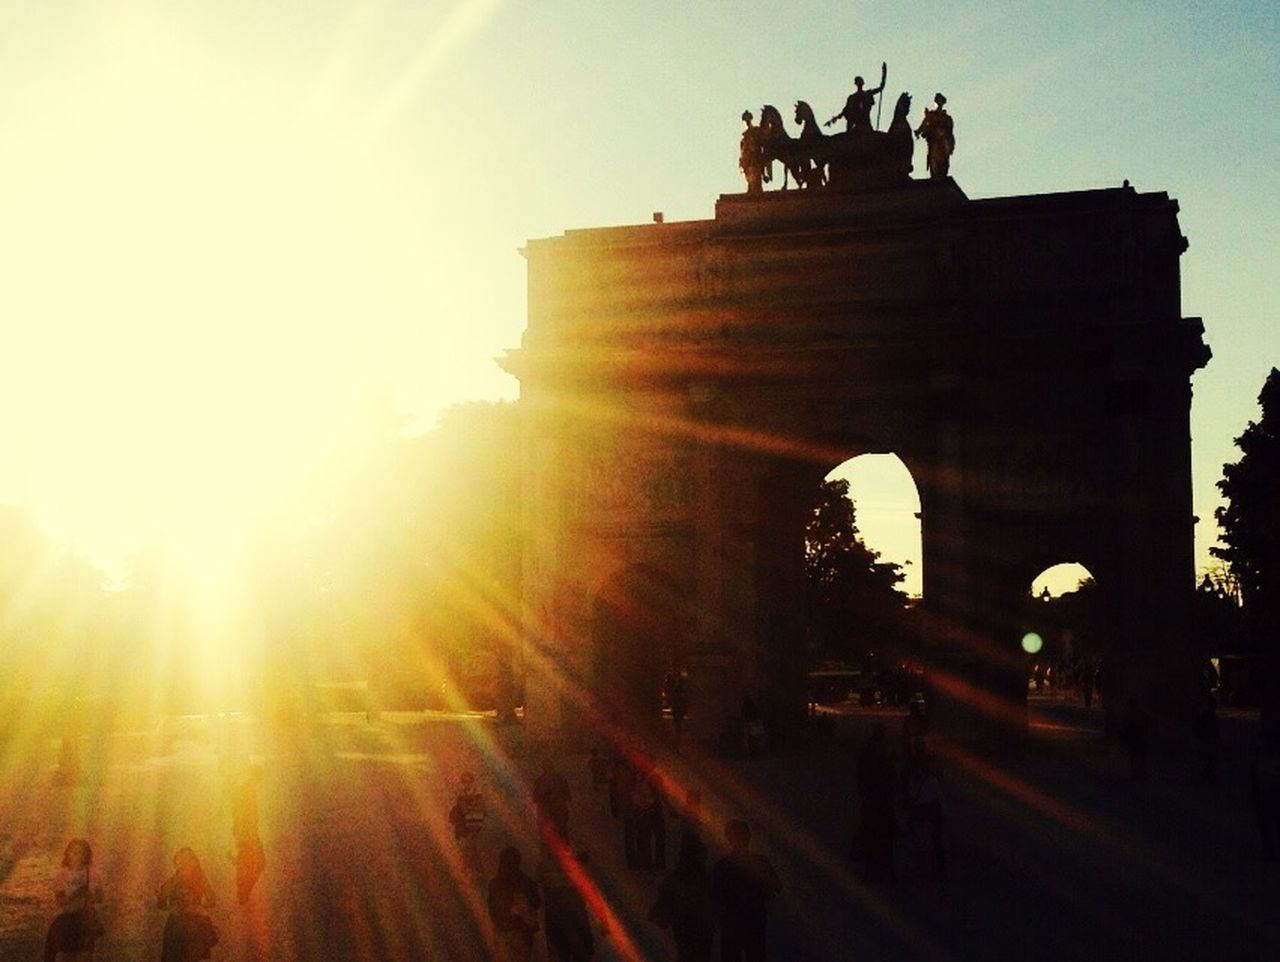 history, architecture, built structure, sun, travel destinations, lens flare, tourism, silhouette, sunlight, outdoors, low angle view, travel, sunset, triumphal arch, sky, statue, large group of people, city gate, ancient, day, men, sculpture, real people, building exterior, people